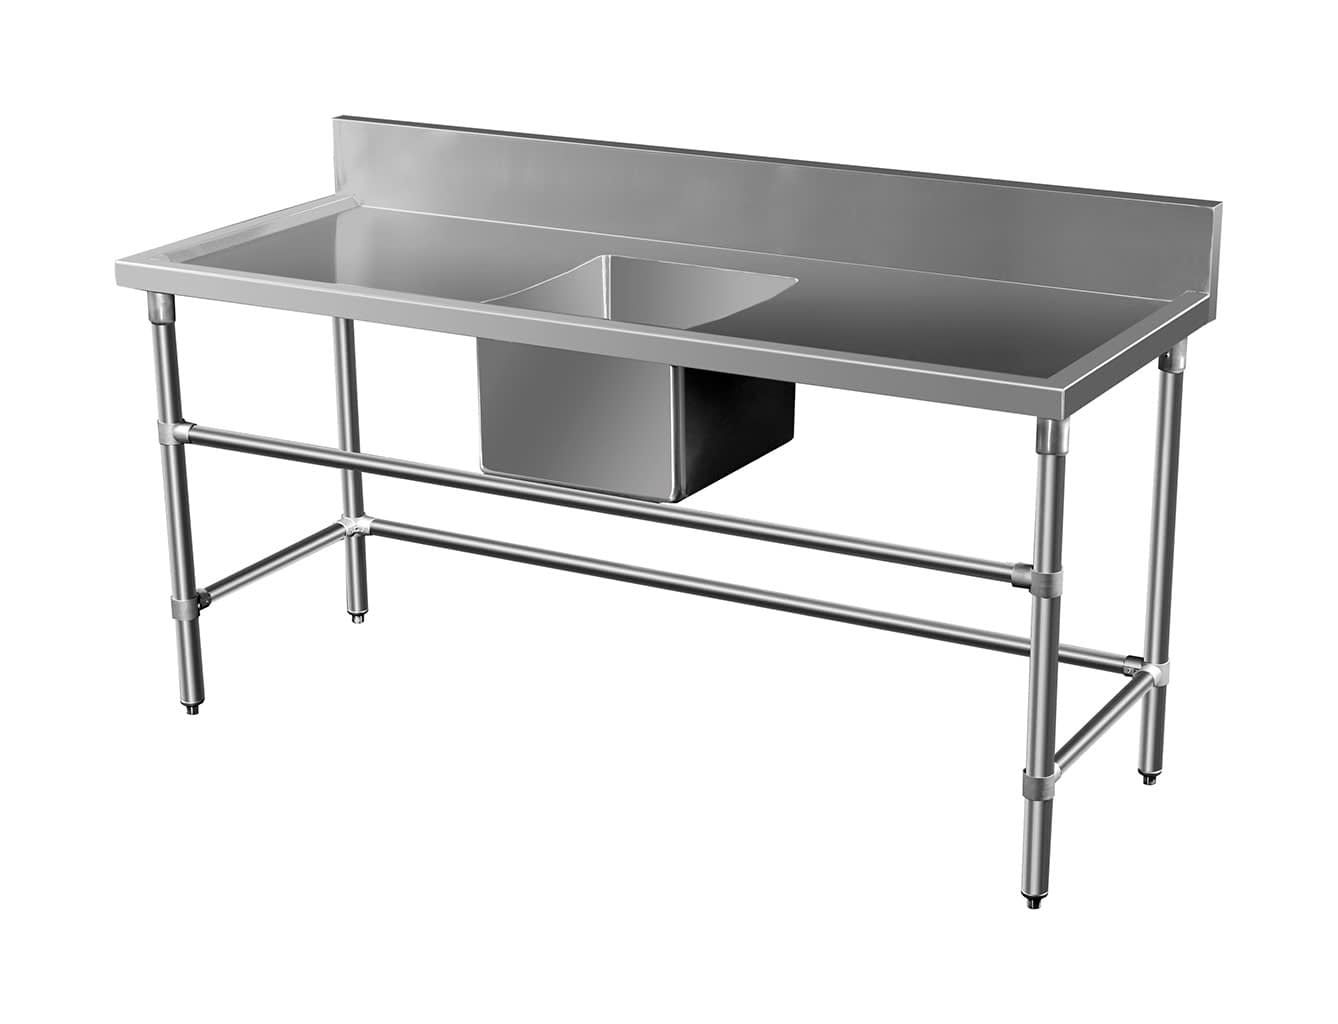 Stainless Steel Catering Sink – Right And Left Bench, 1800 x 700 x 900mm high